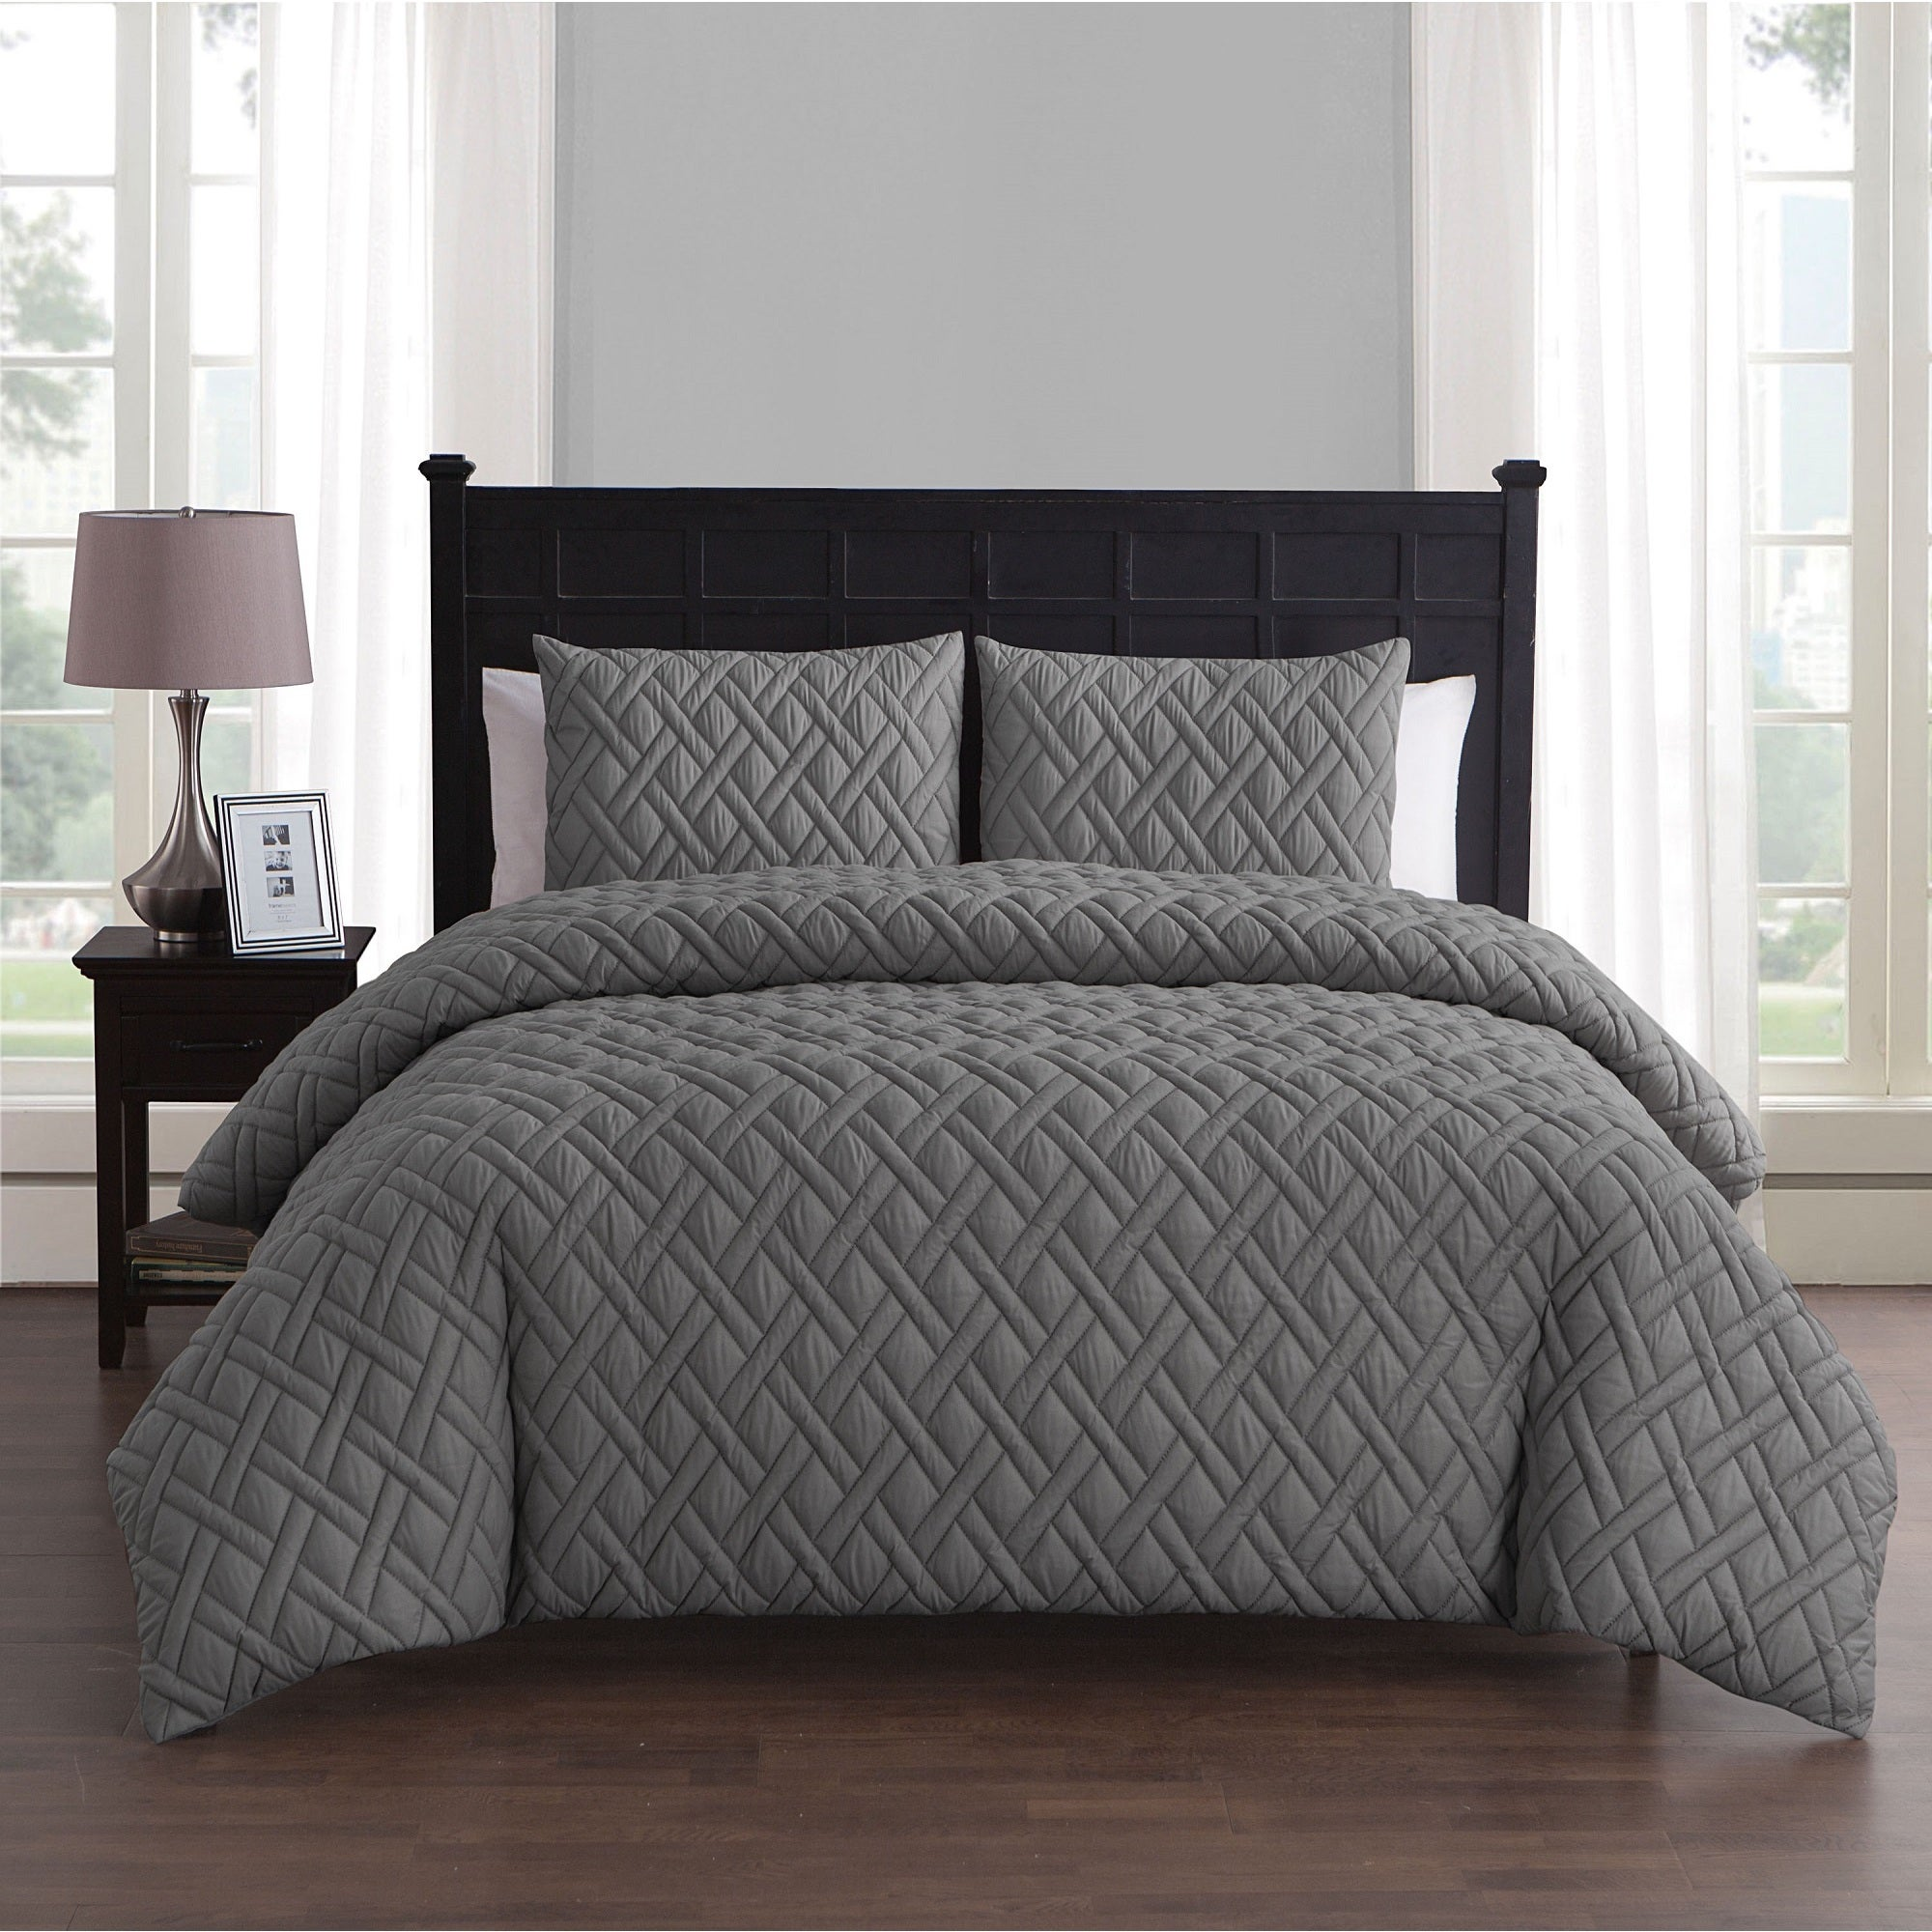 bedding overstock shipping on duvet piper orders city free scene com set bed over cover product grey bath